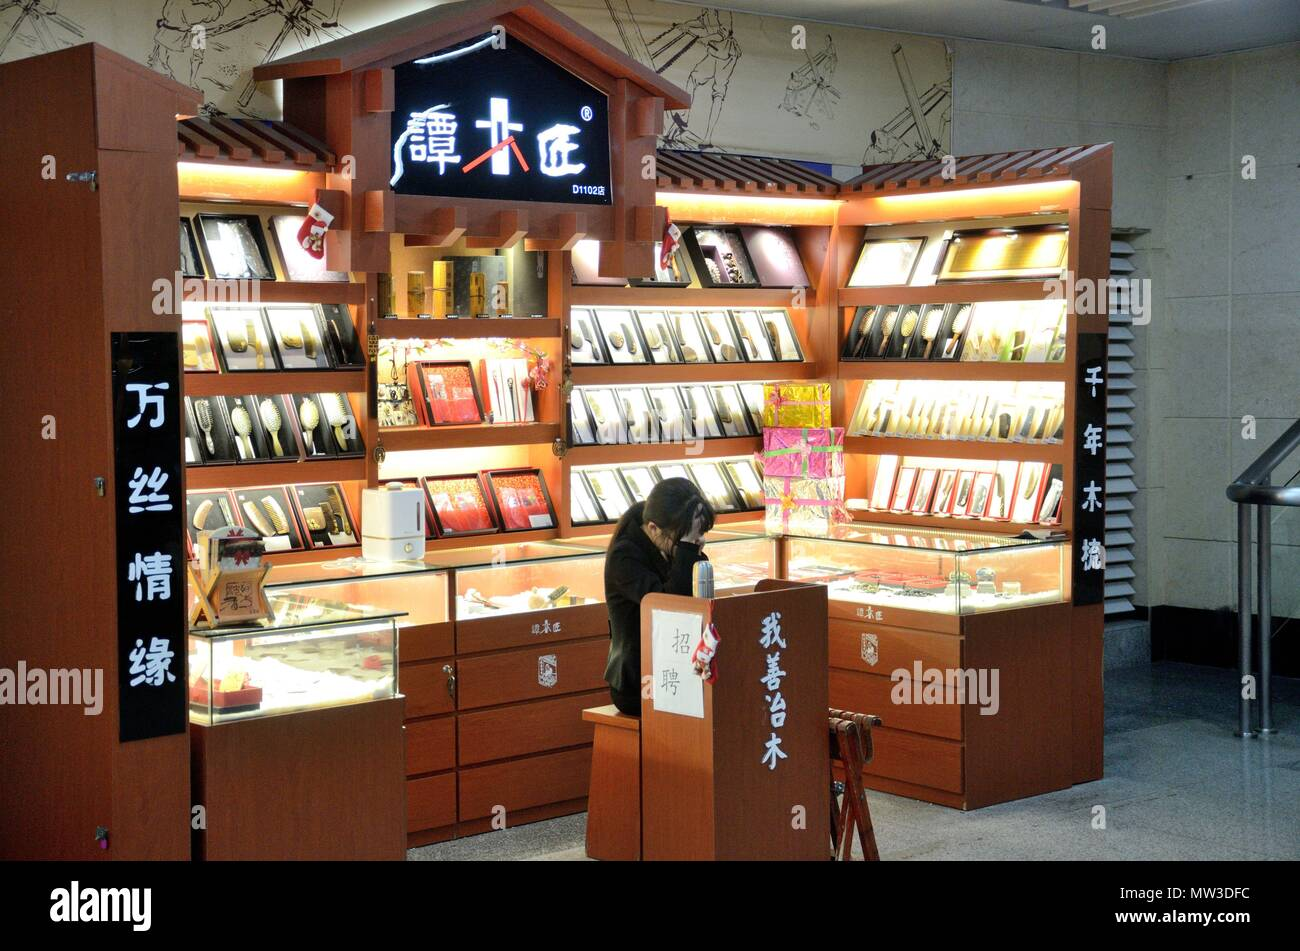 SHENZHEN, CHINA - APRIL 3, 2018: shop offering traditional wooden combs as high-class gifts for Chinese people. Stock Photo